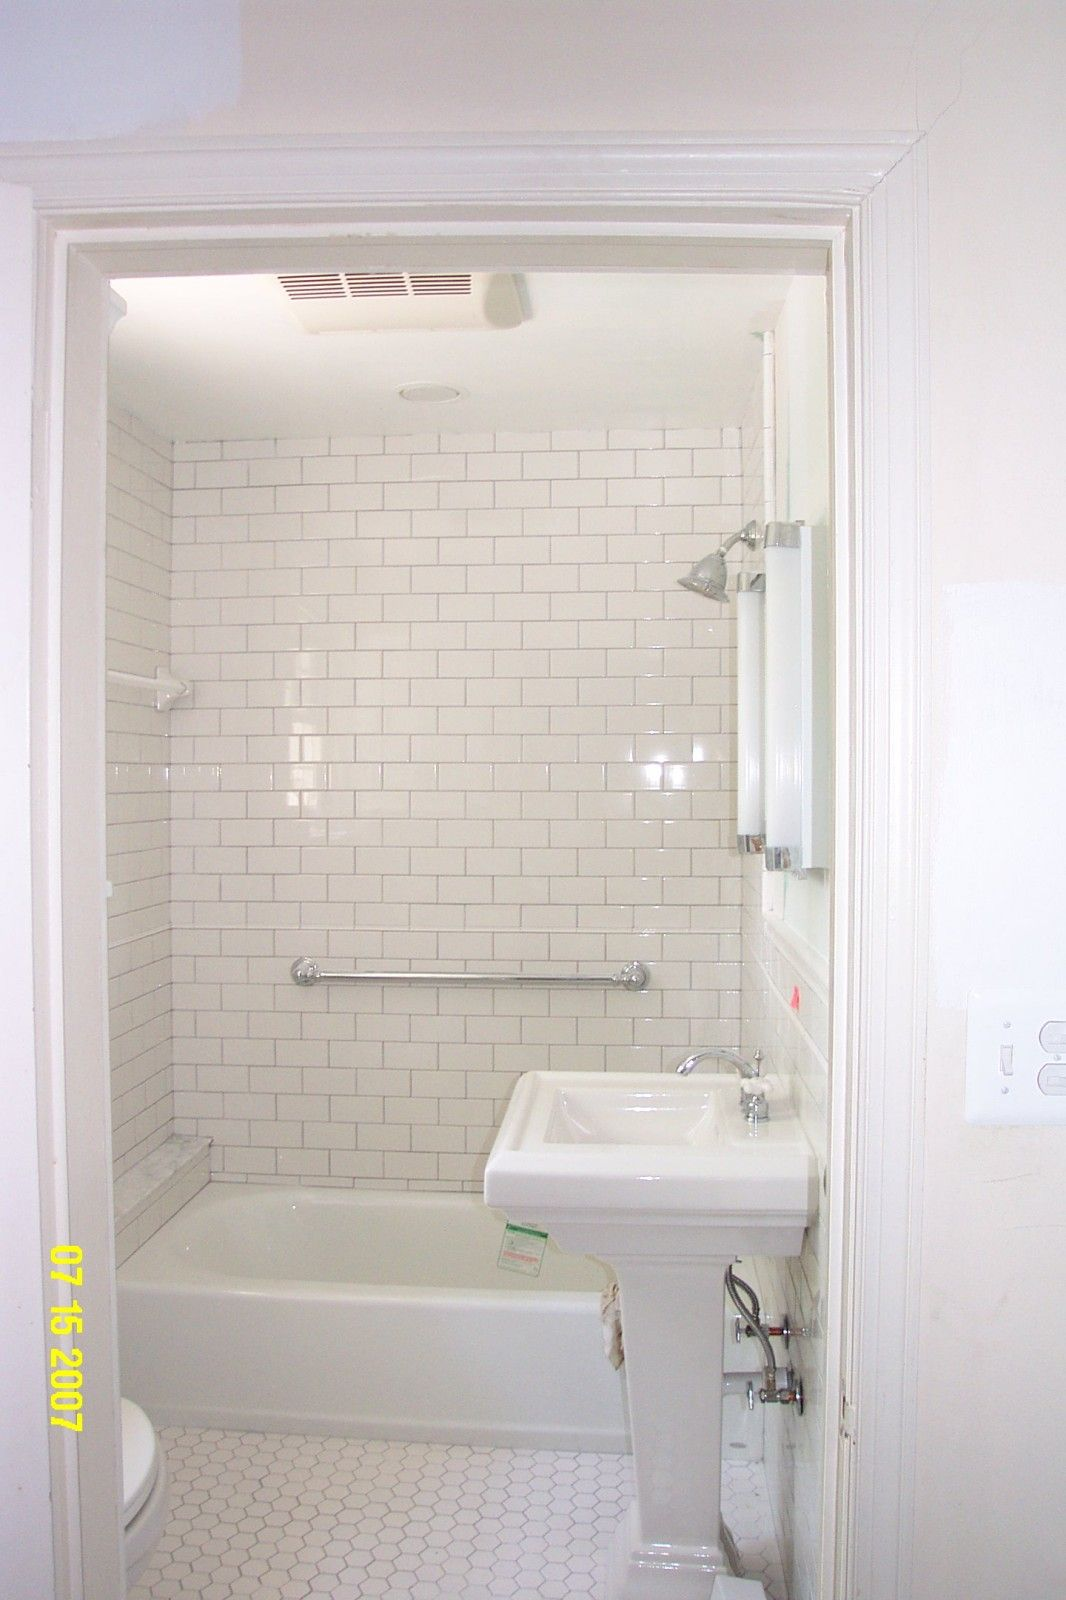 Photo Gallery Website Image of Subway Tile Bathroom Ideas White